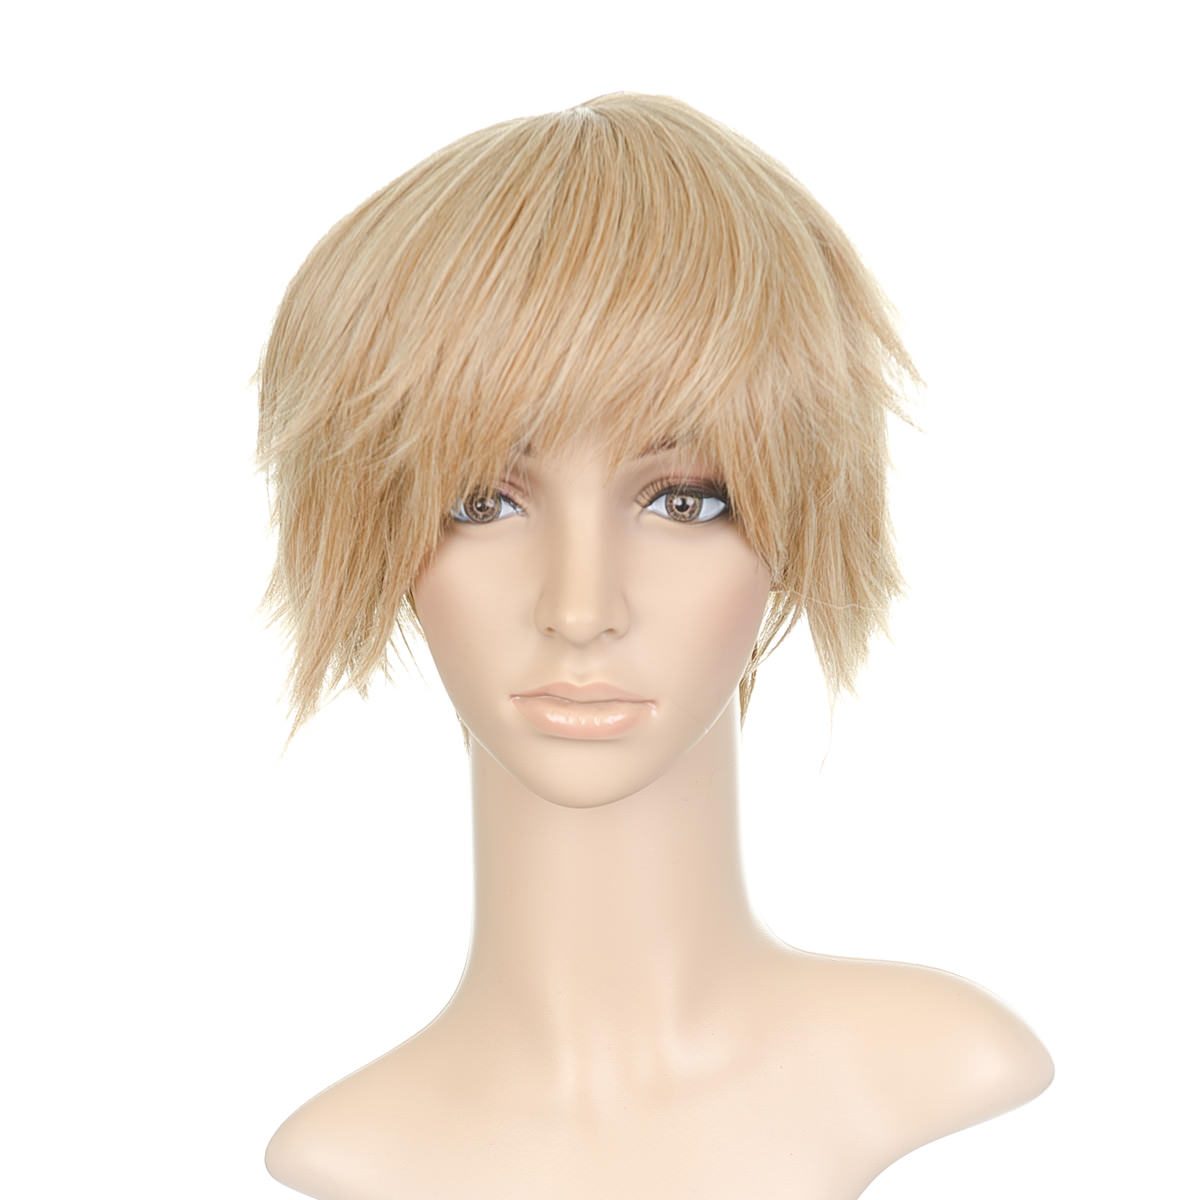 Sandy Blonde Styled Short Length Anime Cosplay Costume Wig ...